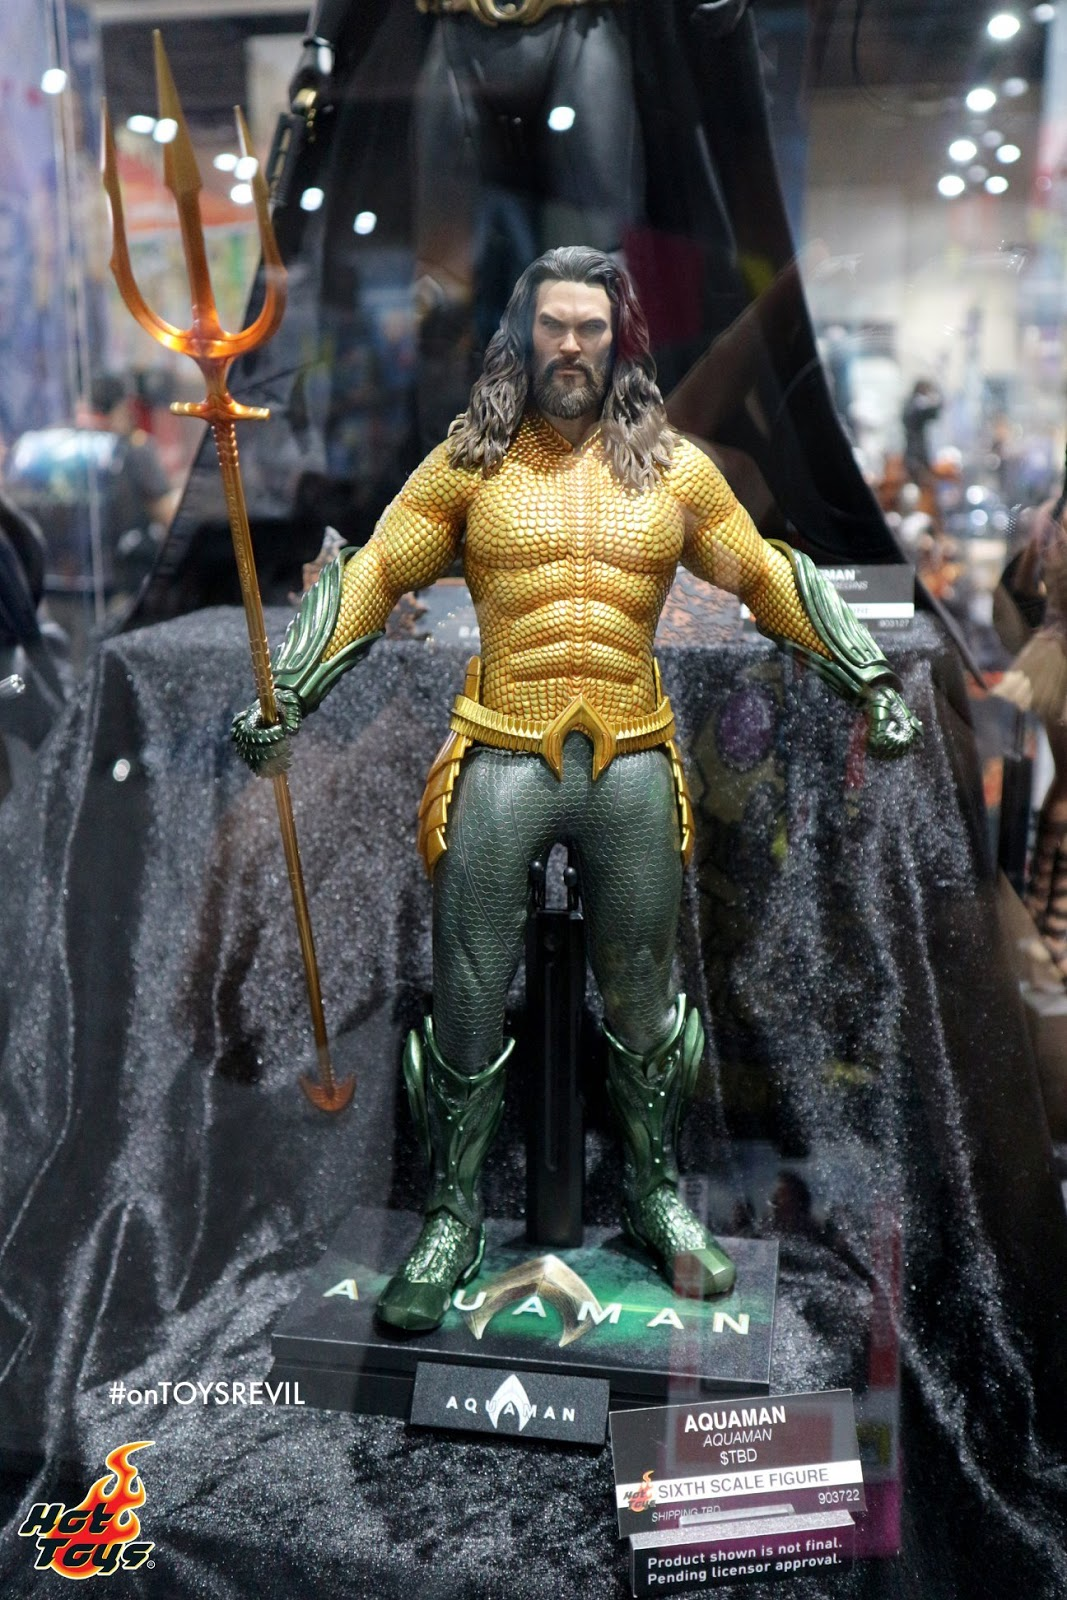 Not Toys For 2018 From Moive : Hot toys sdcc spotlight aquaman in th